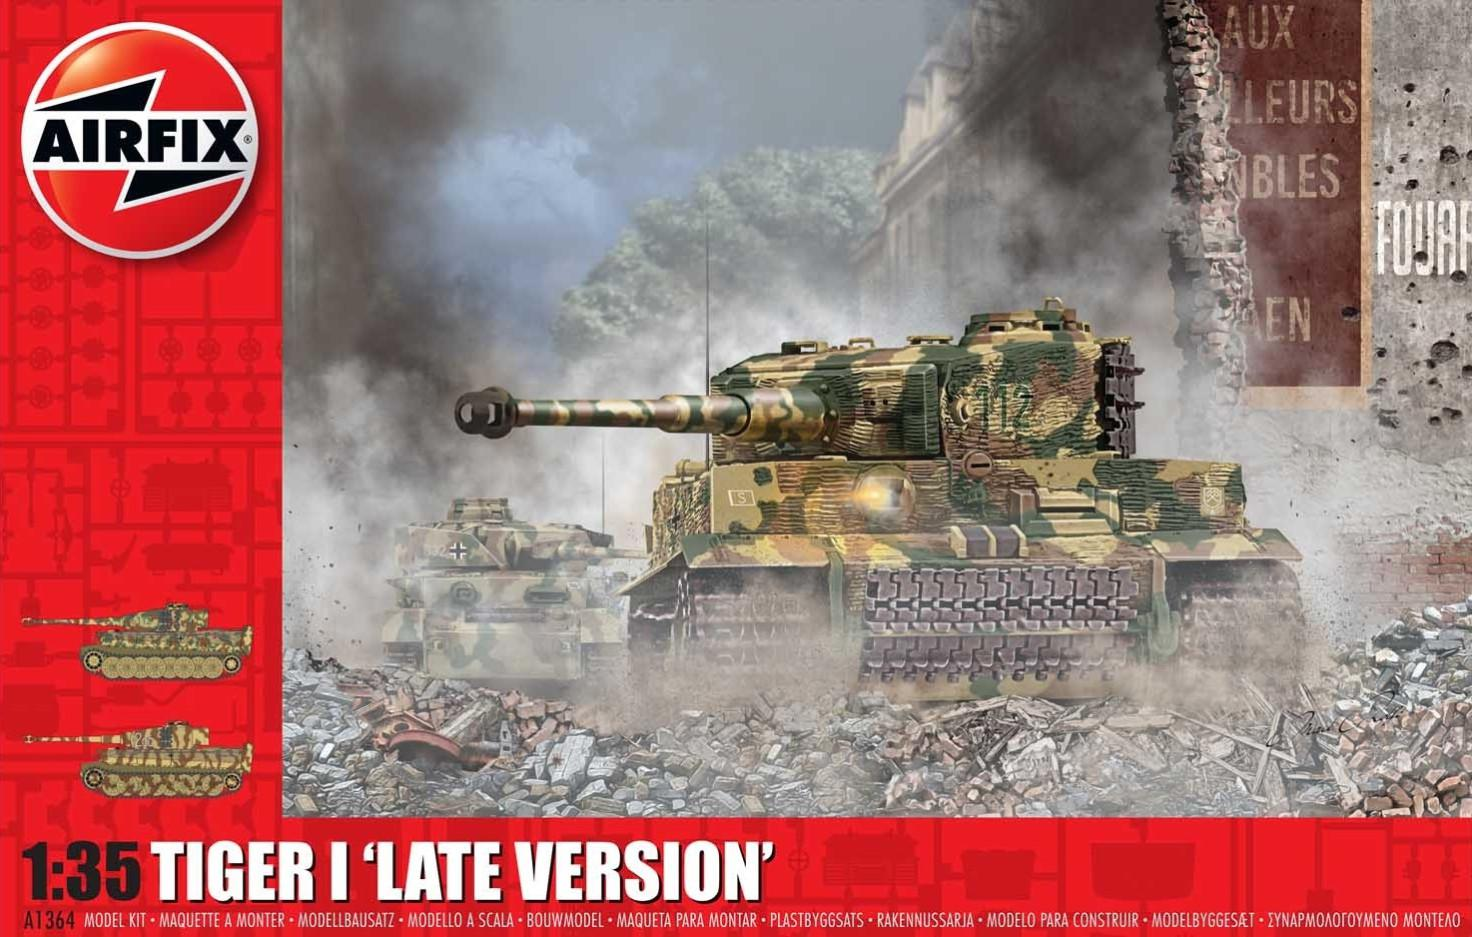 Airfix Tiger-1 Late Version 1:35 A1364